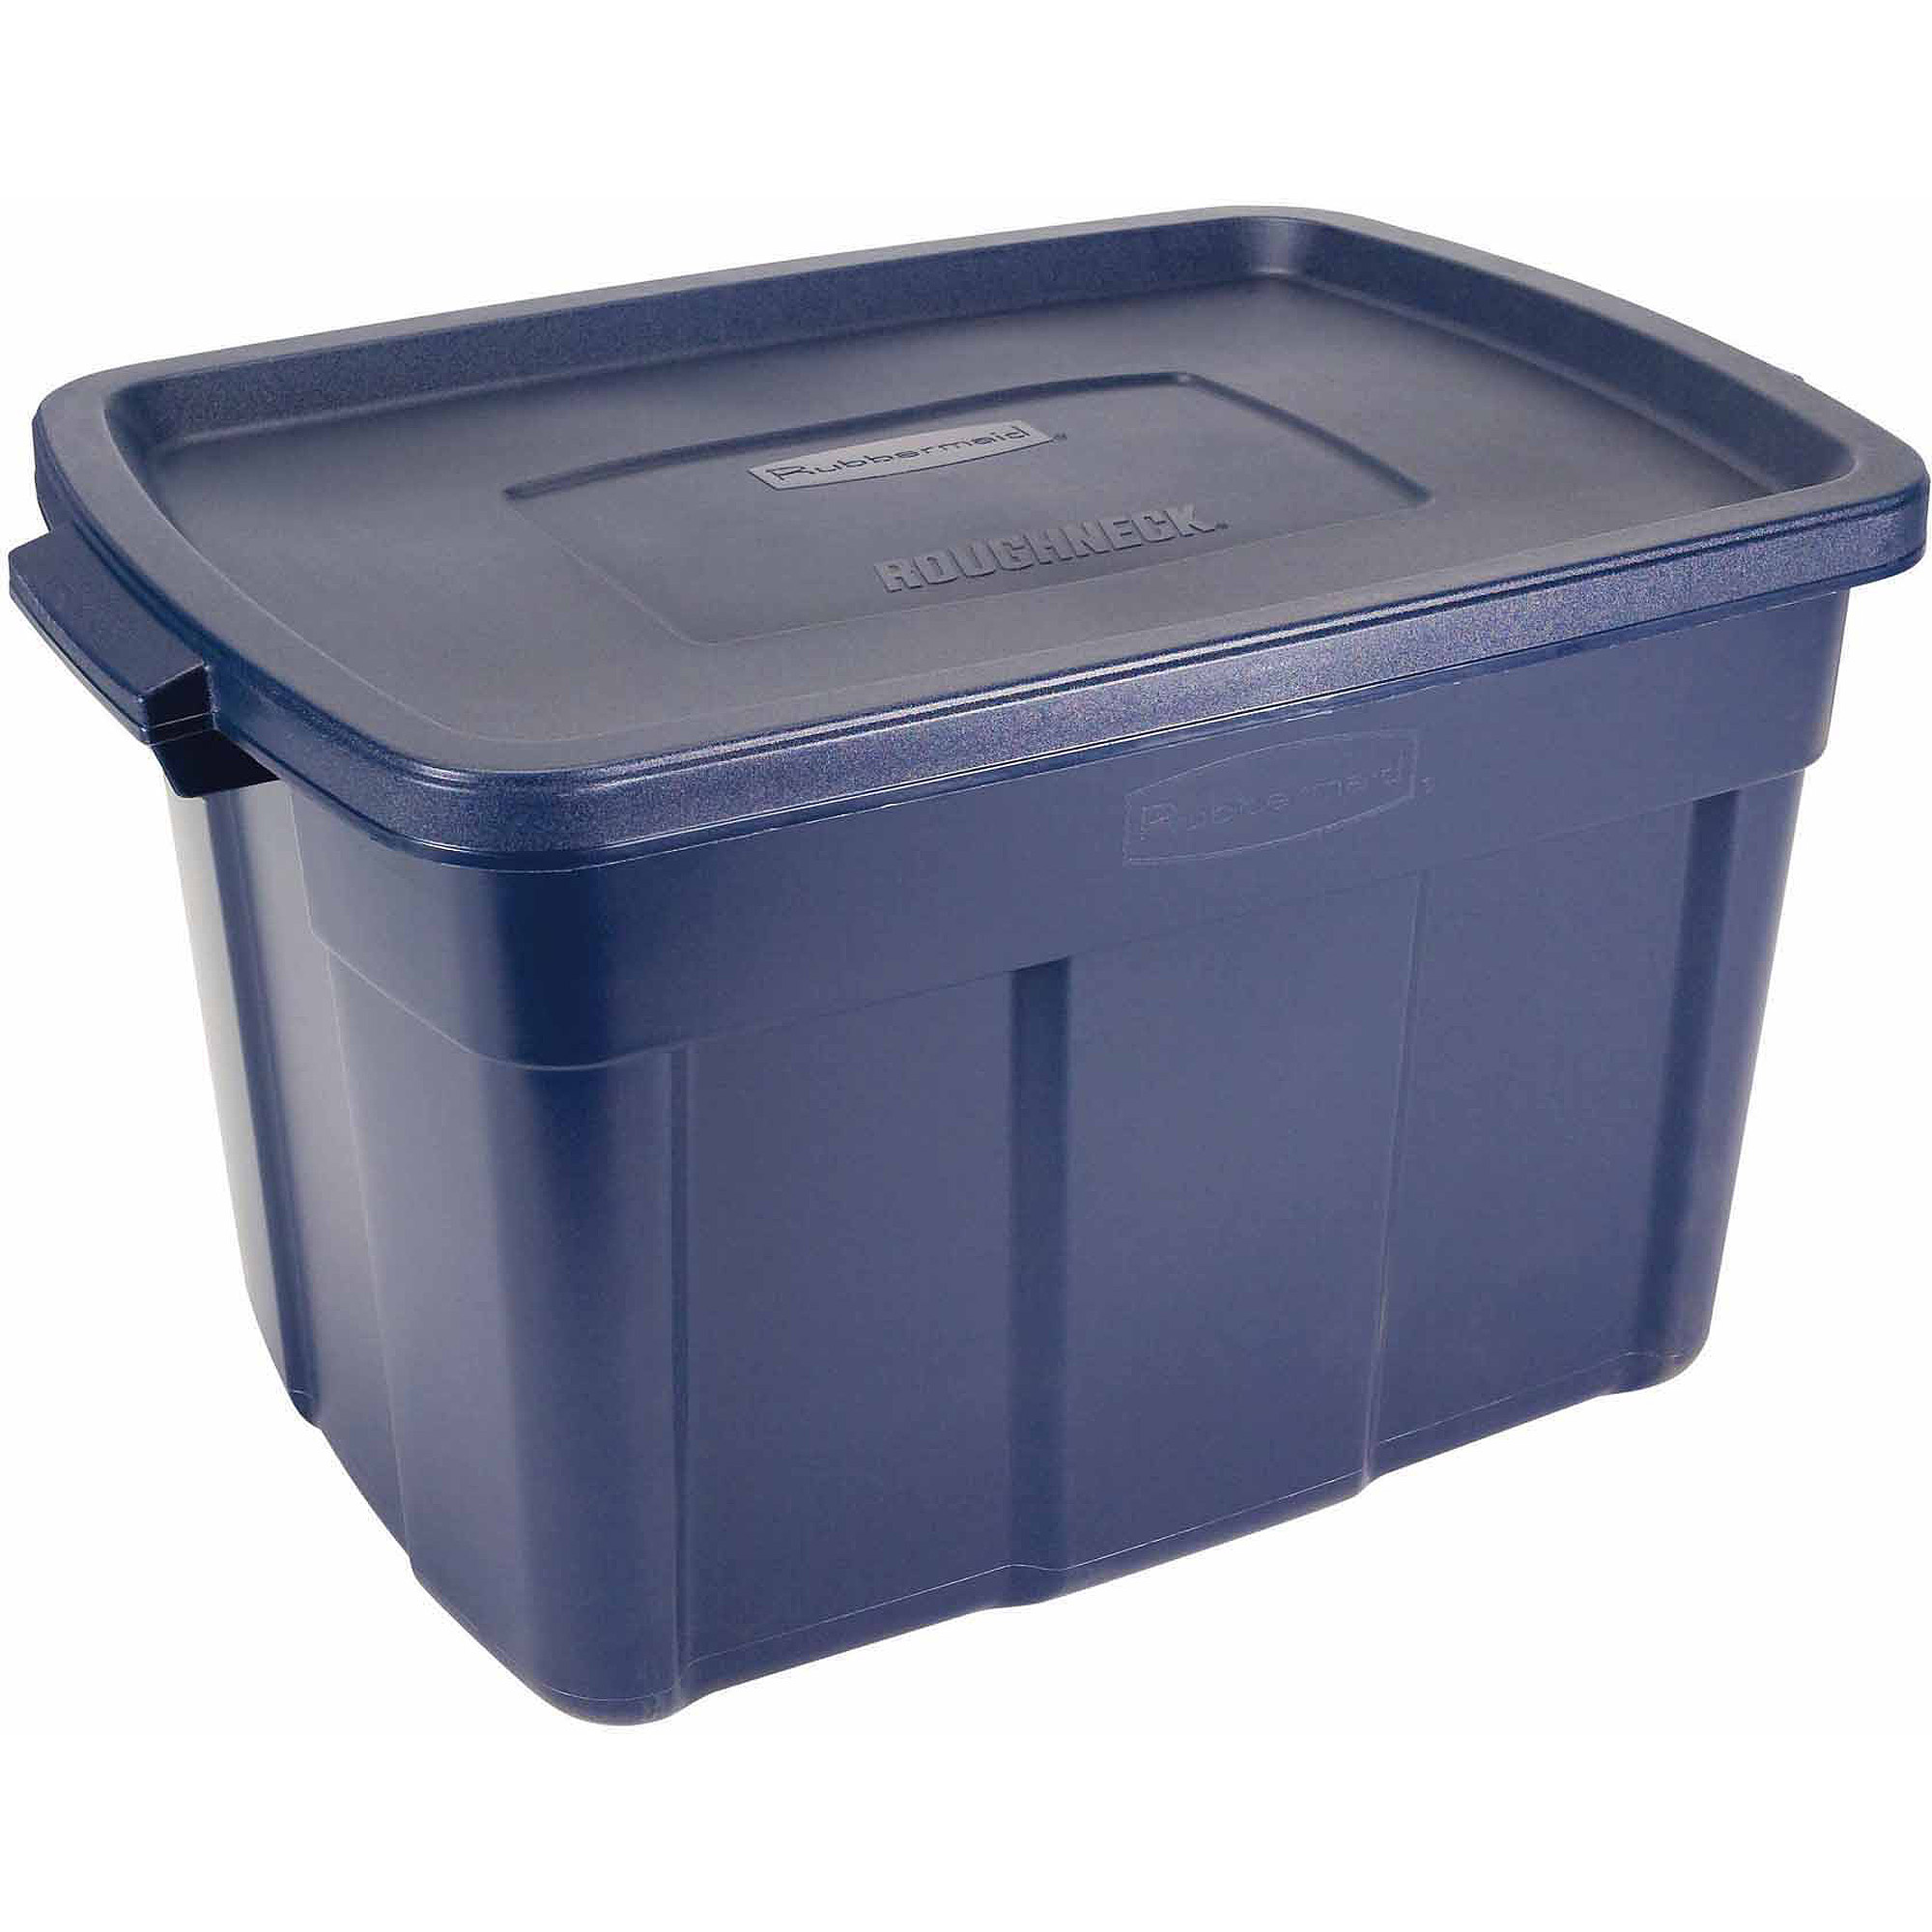 rubbermaid roughneck tote storage bin 25 galon blue. Black Bedroom Furniture Sets. Home Design Ideas